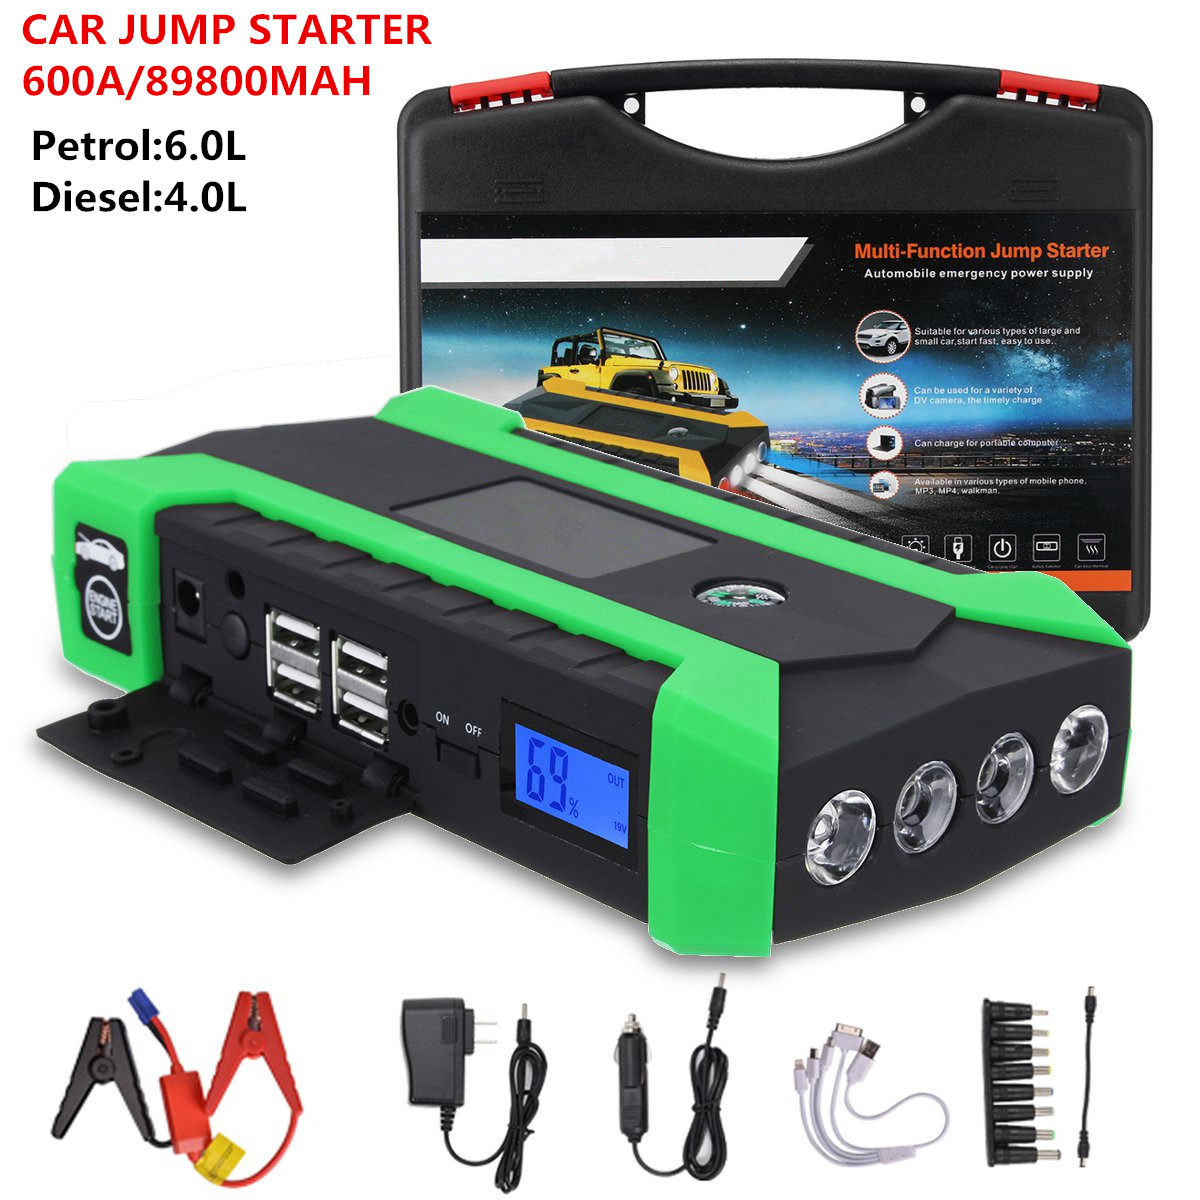 Car-Battery-Booster Power-Bank Jump-Starter Portable Charger Starting-Device 89800mah title=